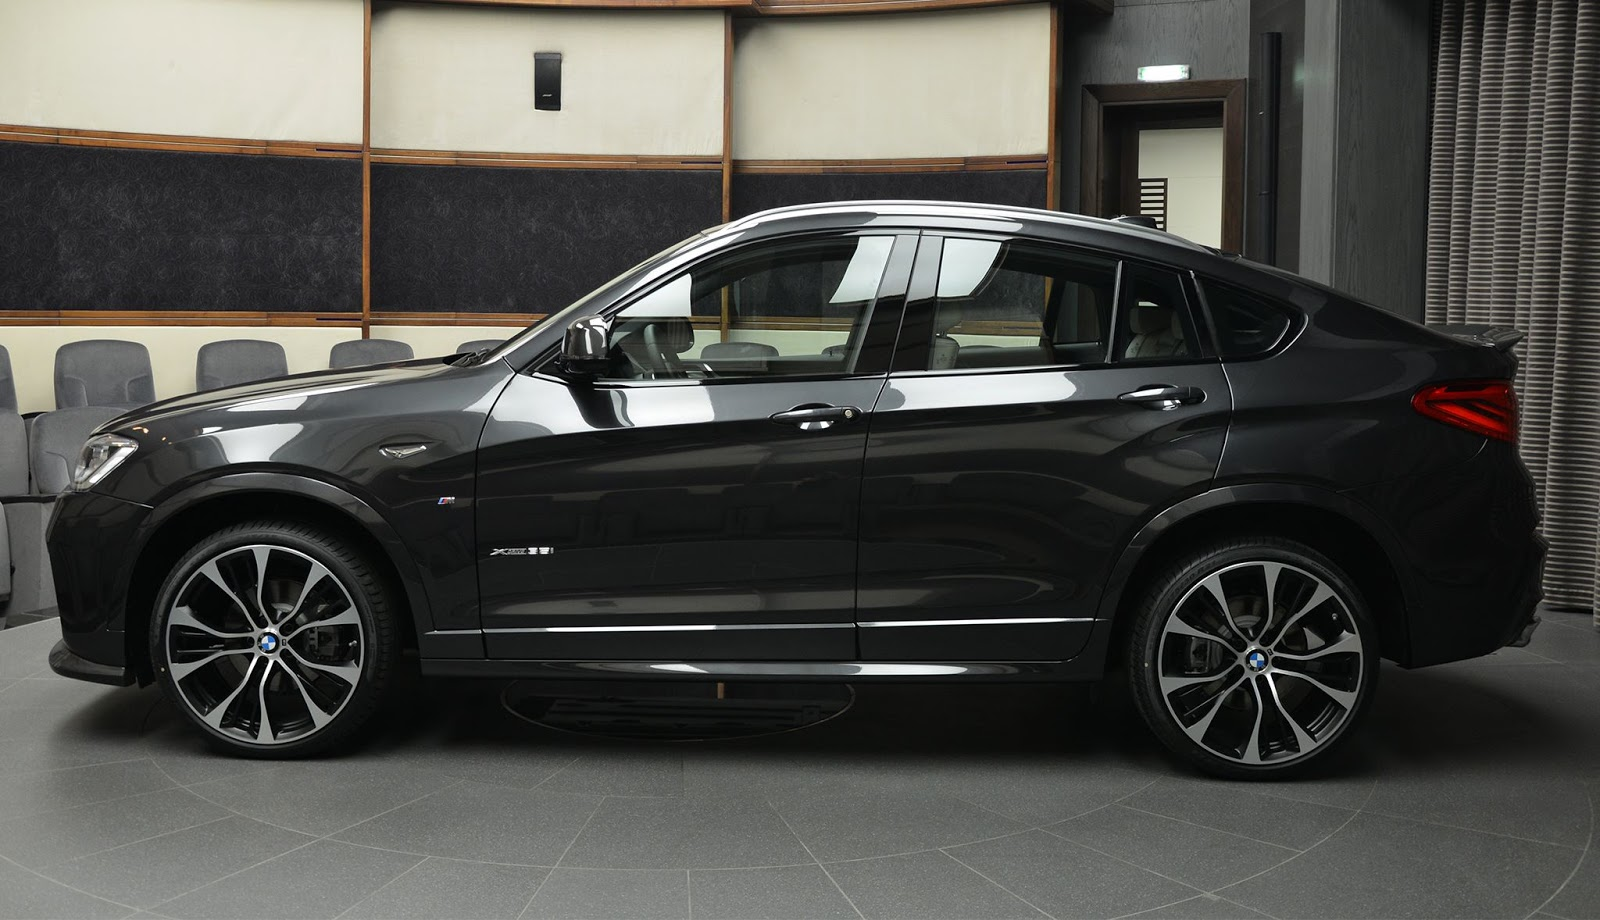 bmw x4 looks the goods with m performance and 3d design parts carscoops. Black Bedroom Furniture Sets. Home Design Ideas